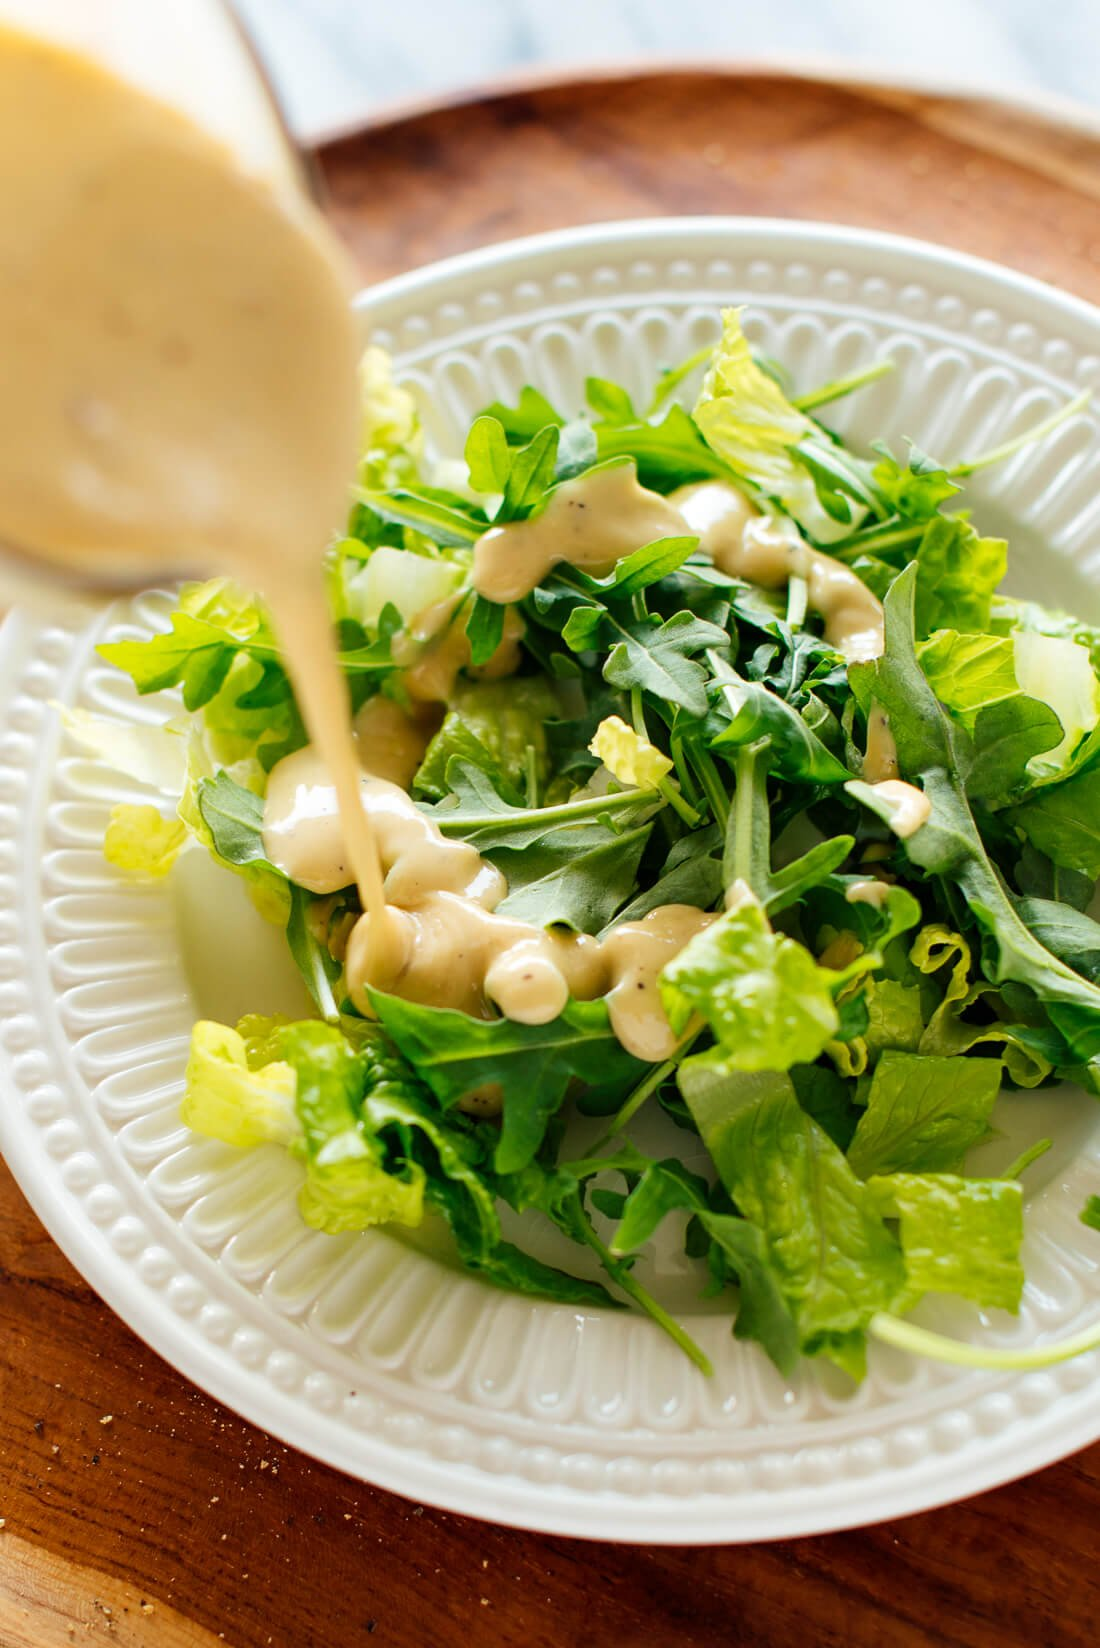 tahini dressing drizzled on salad